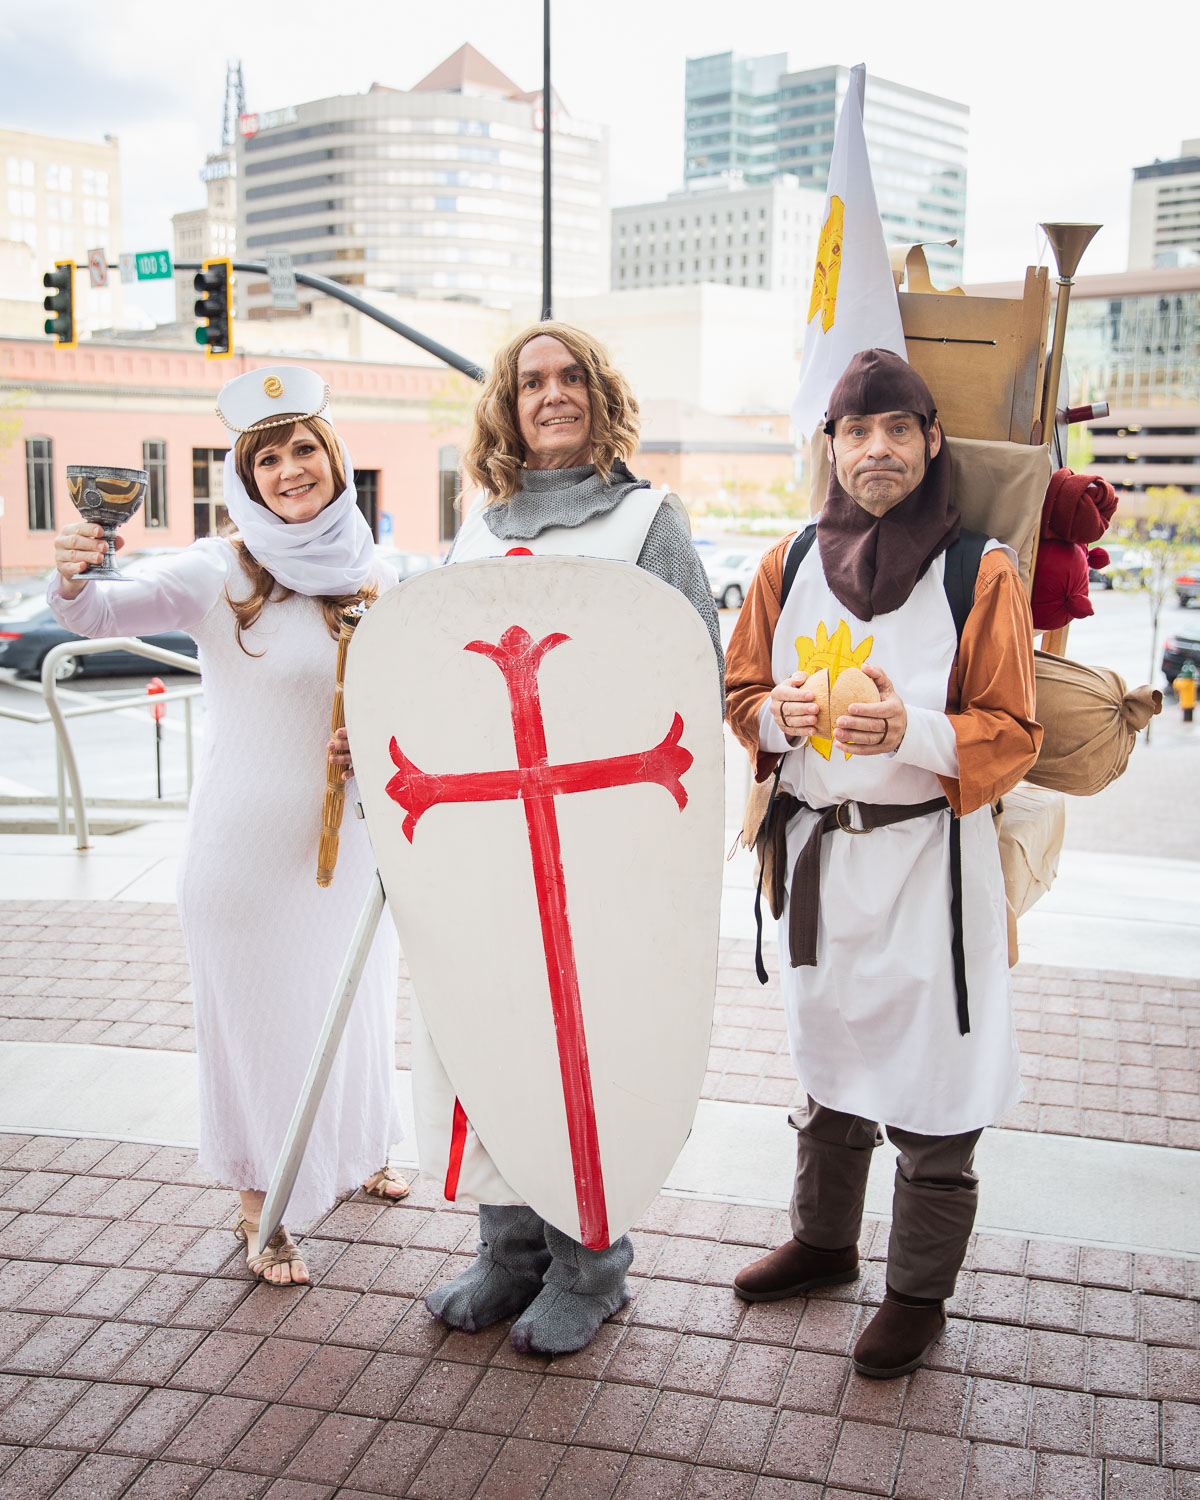 Harold, Roxanne and Frank from HRW Creations donning a hilarious and impressive Monty Python's Holy Grail trio. Photo: @Lmsorenson